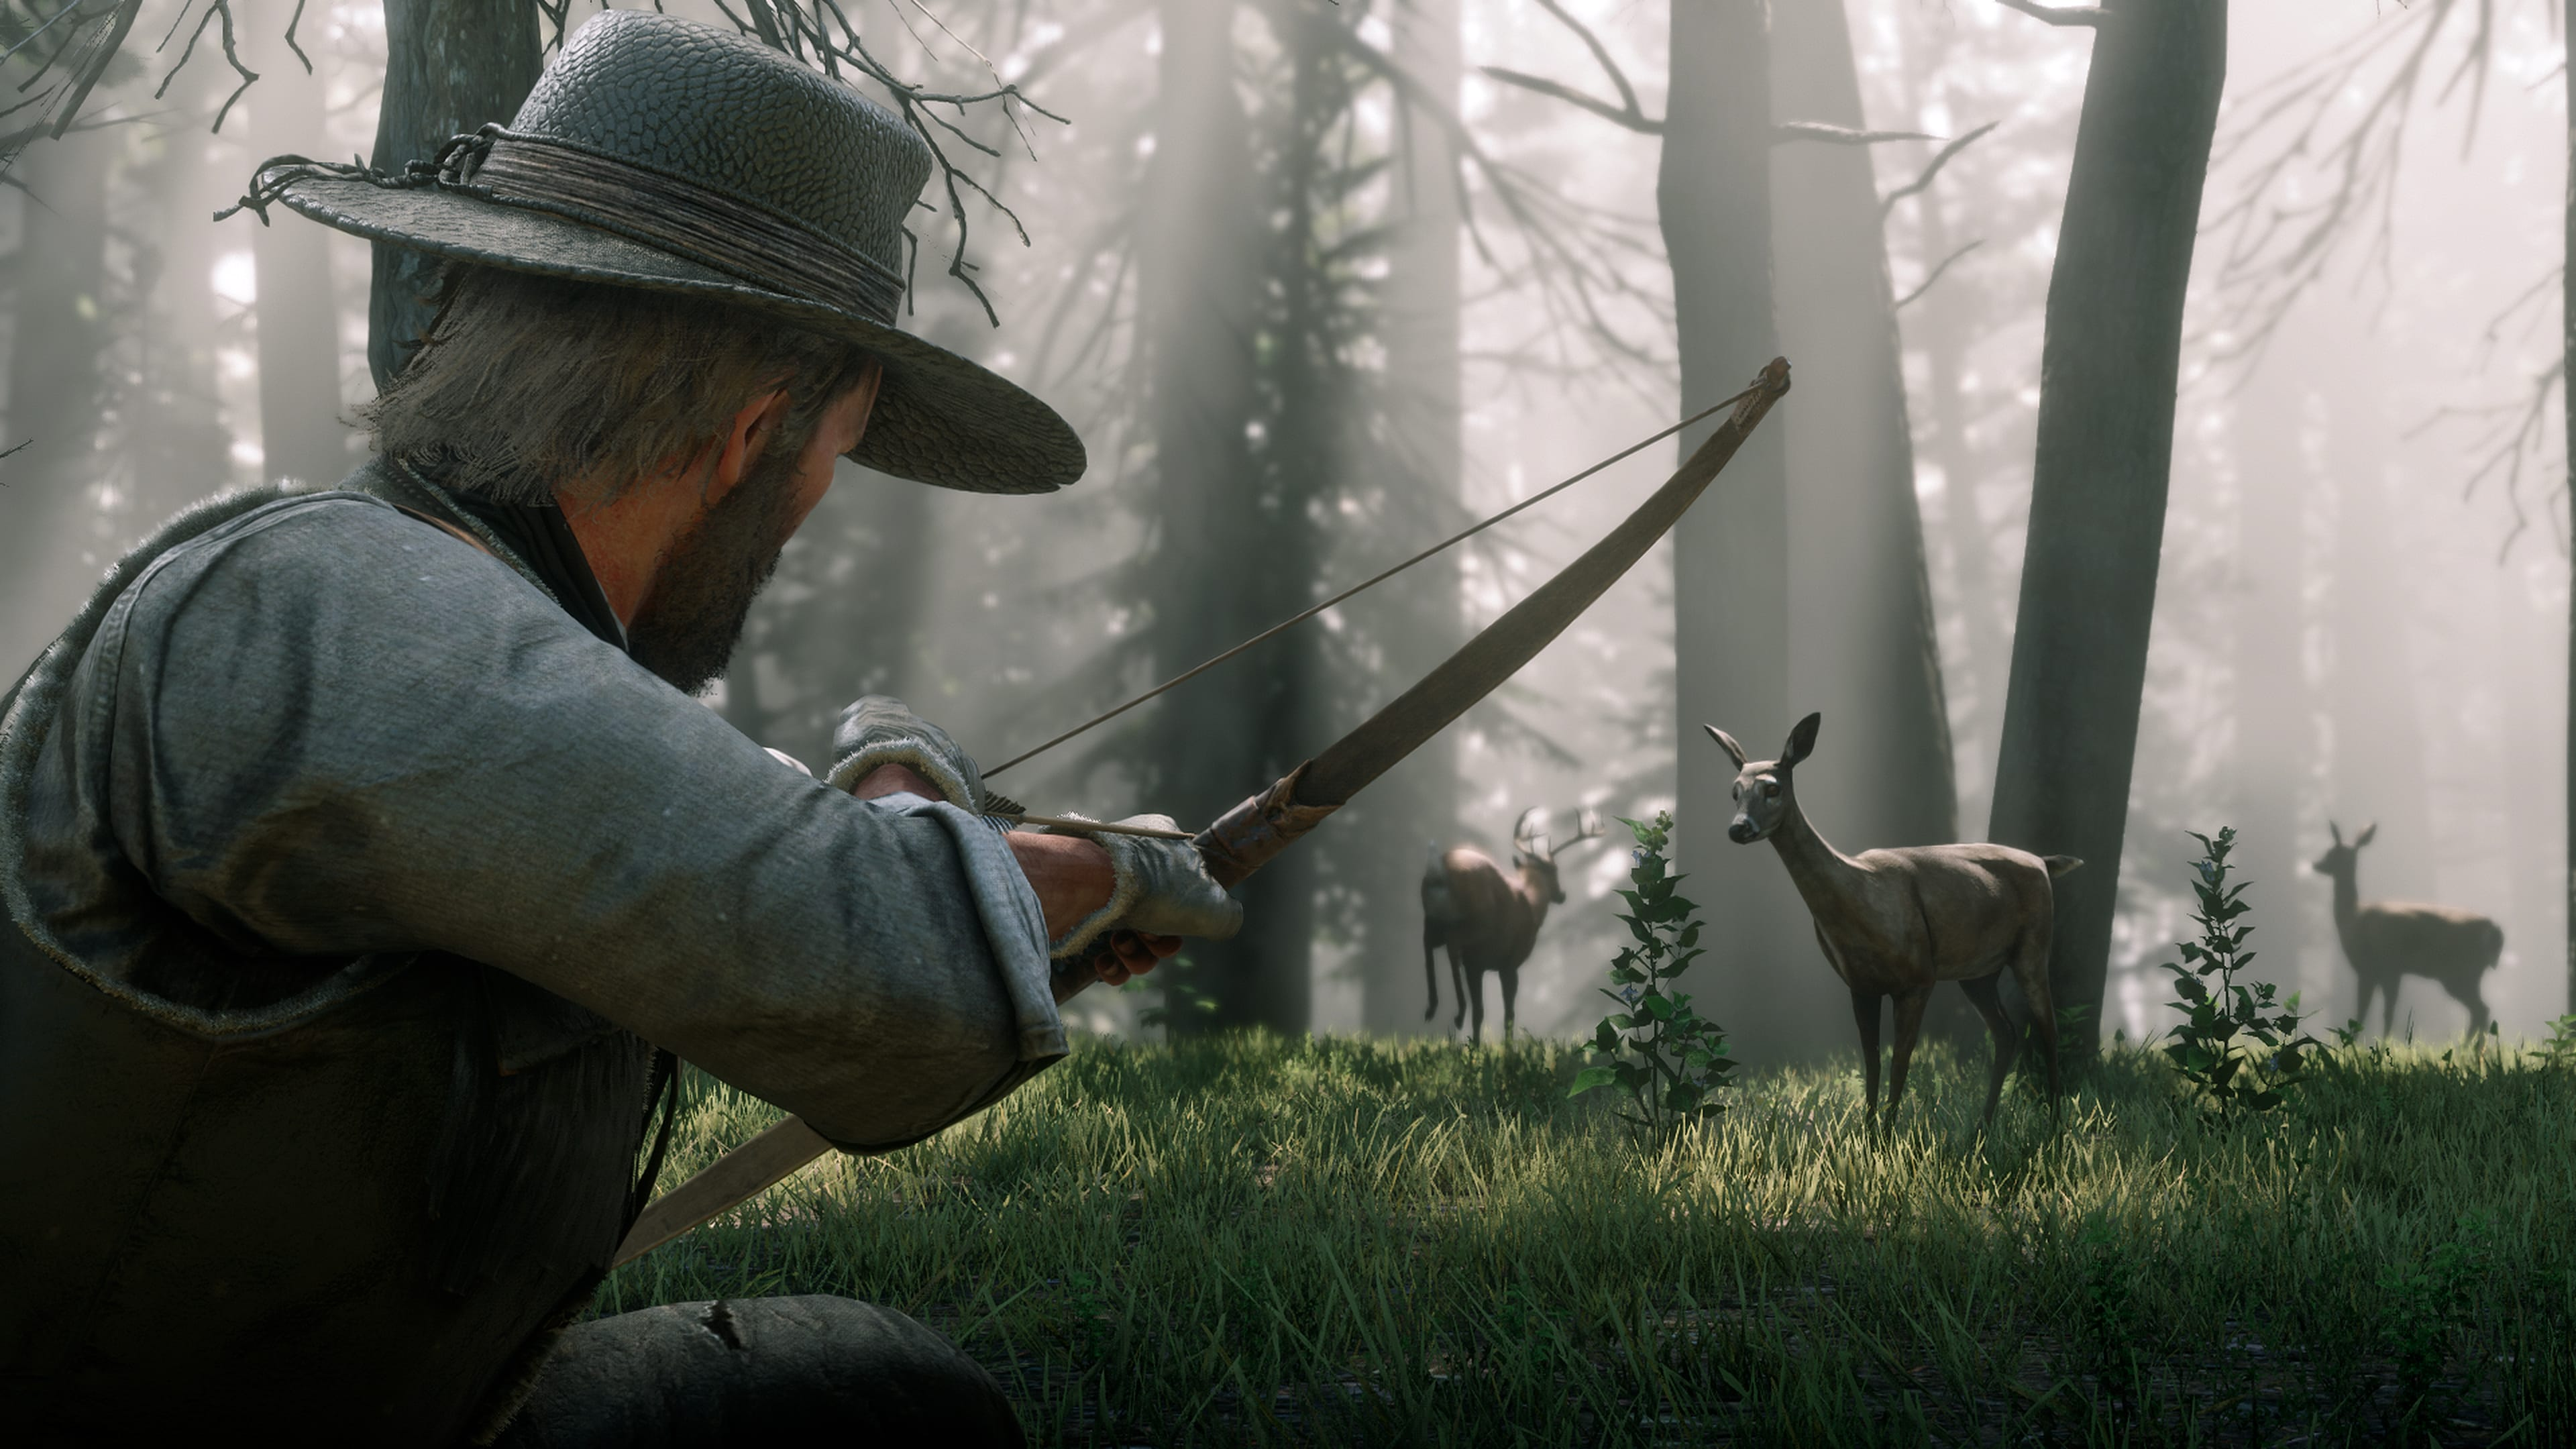 Red Dead Redemption 2 Legendary Animal locations, and how best to